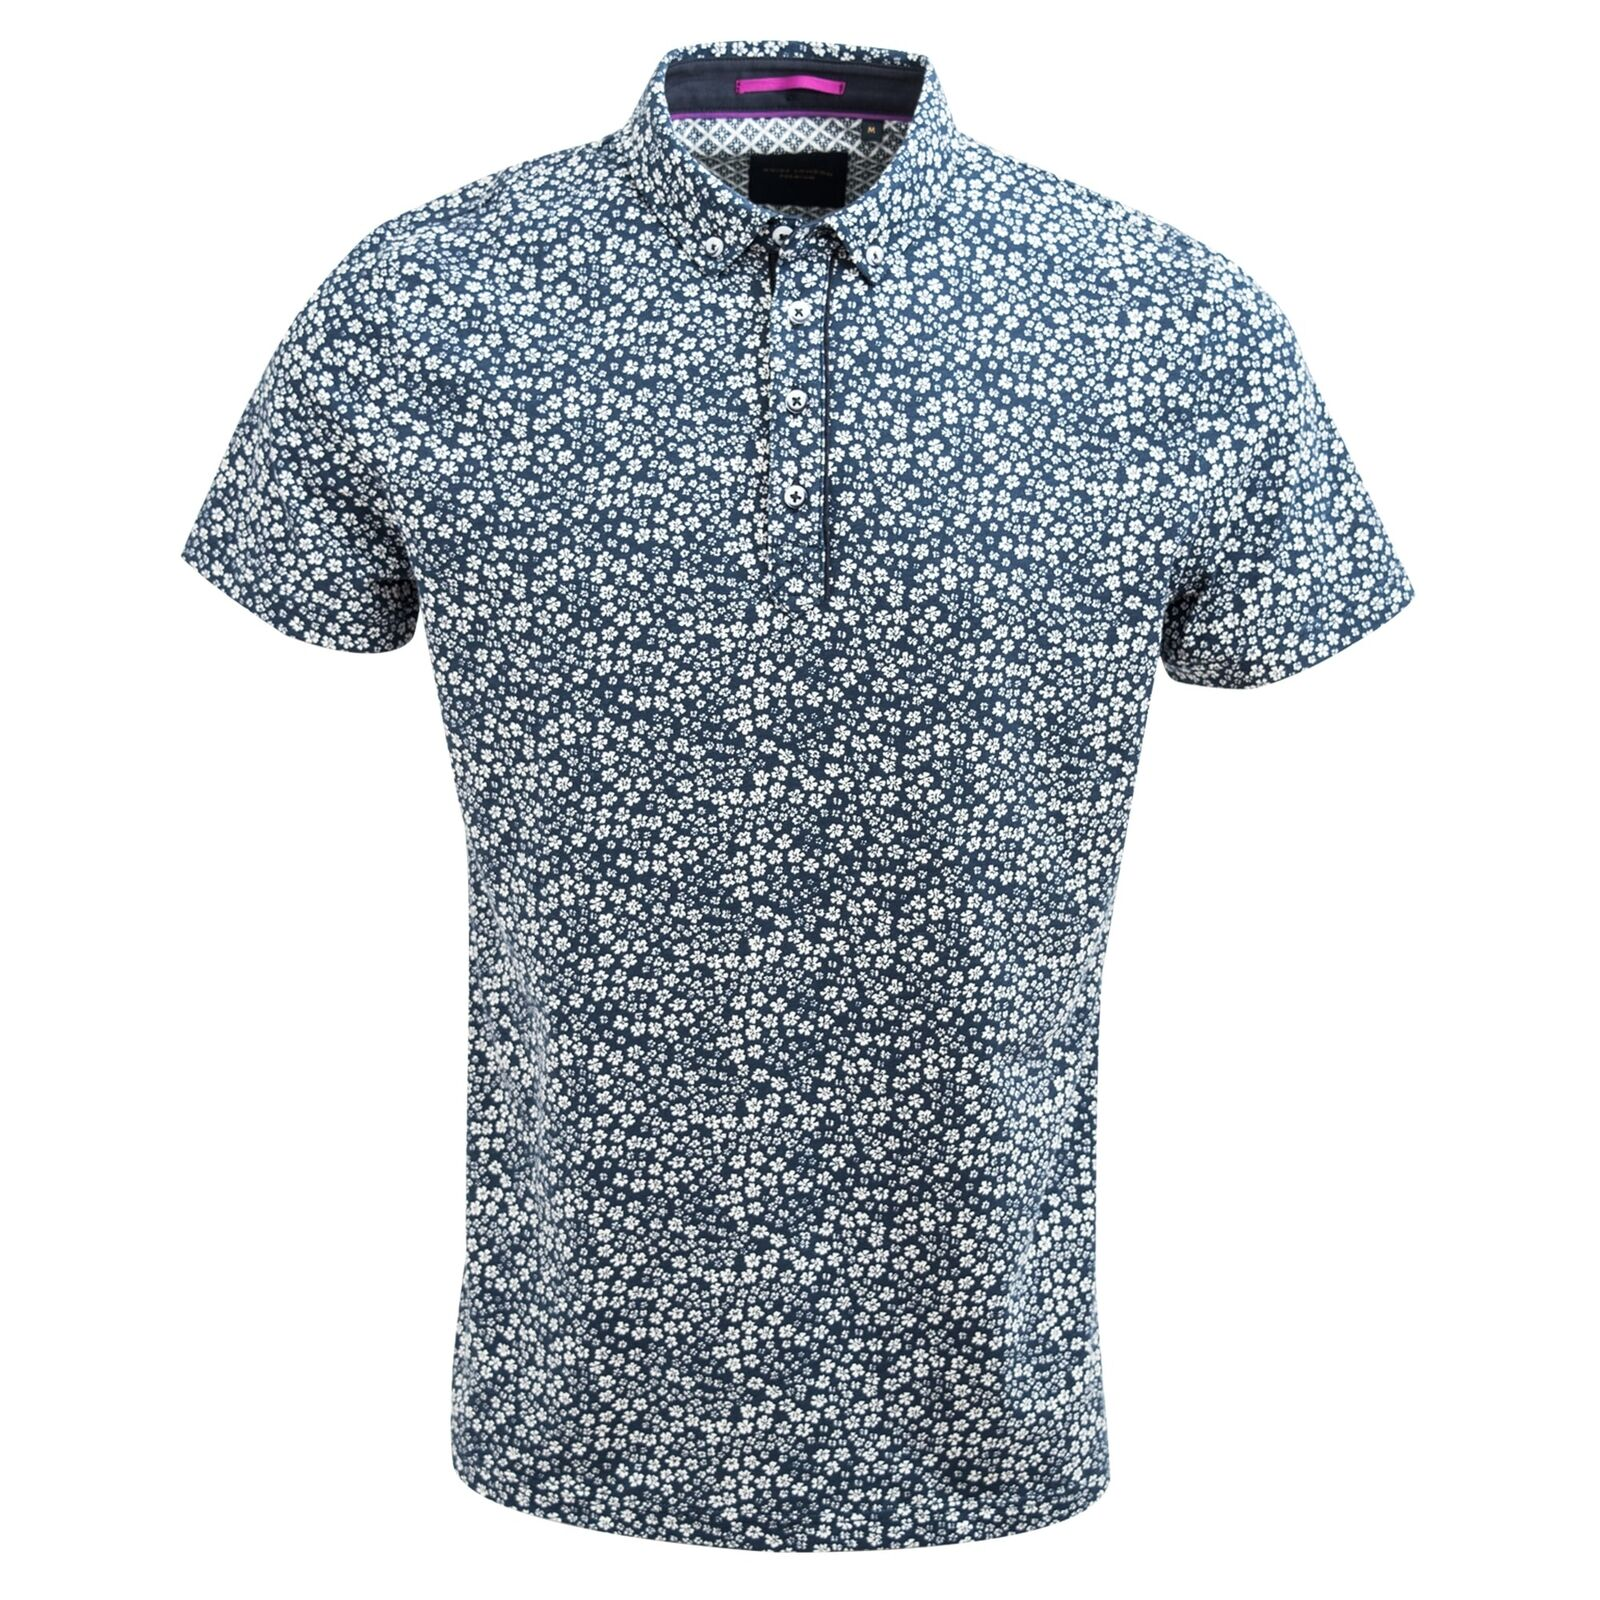 Guide London Navy Smart Small Flower Print Luxury Cotton Mens Polo T-Shirt